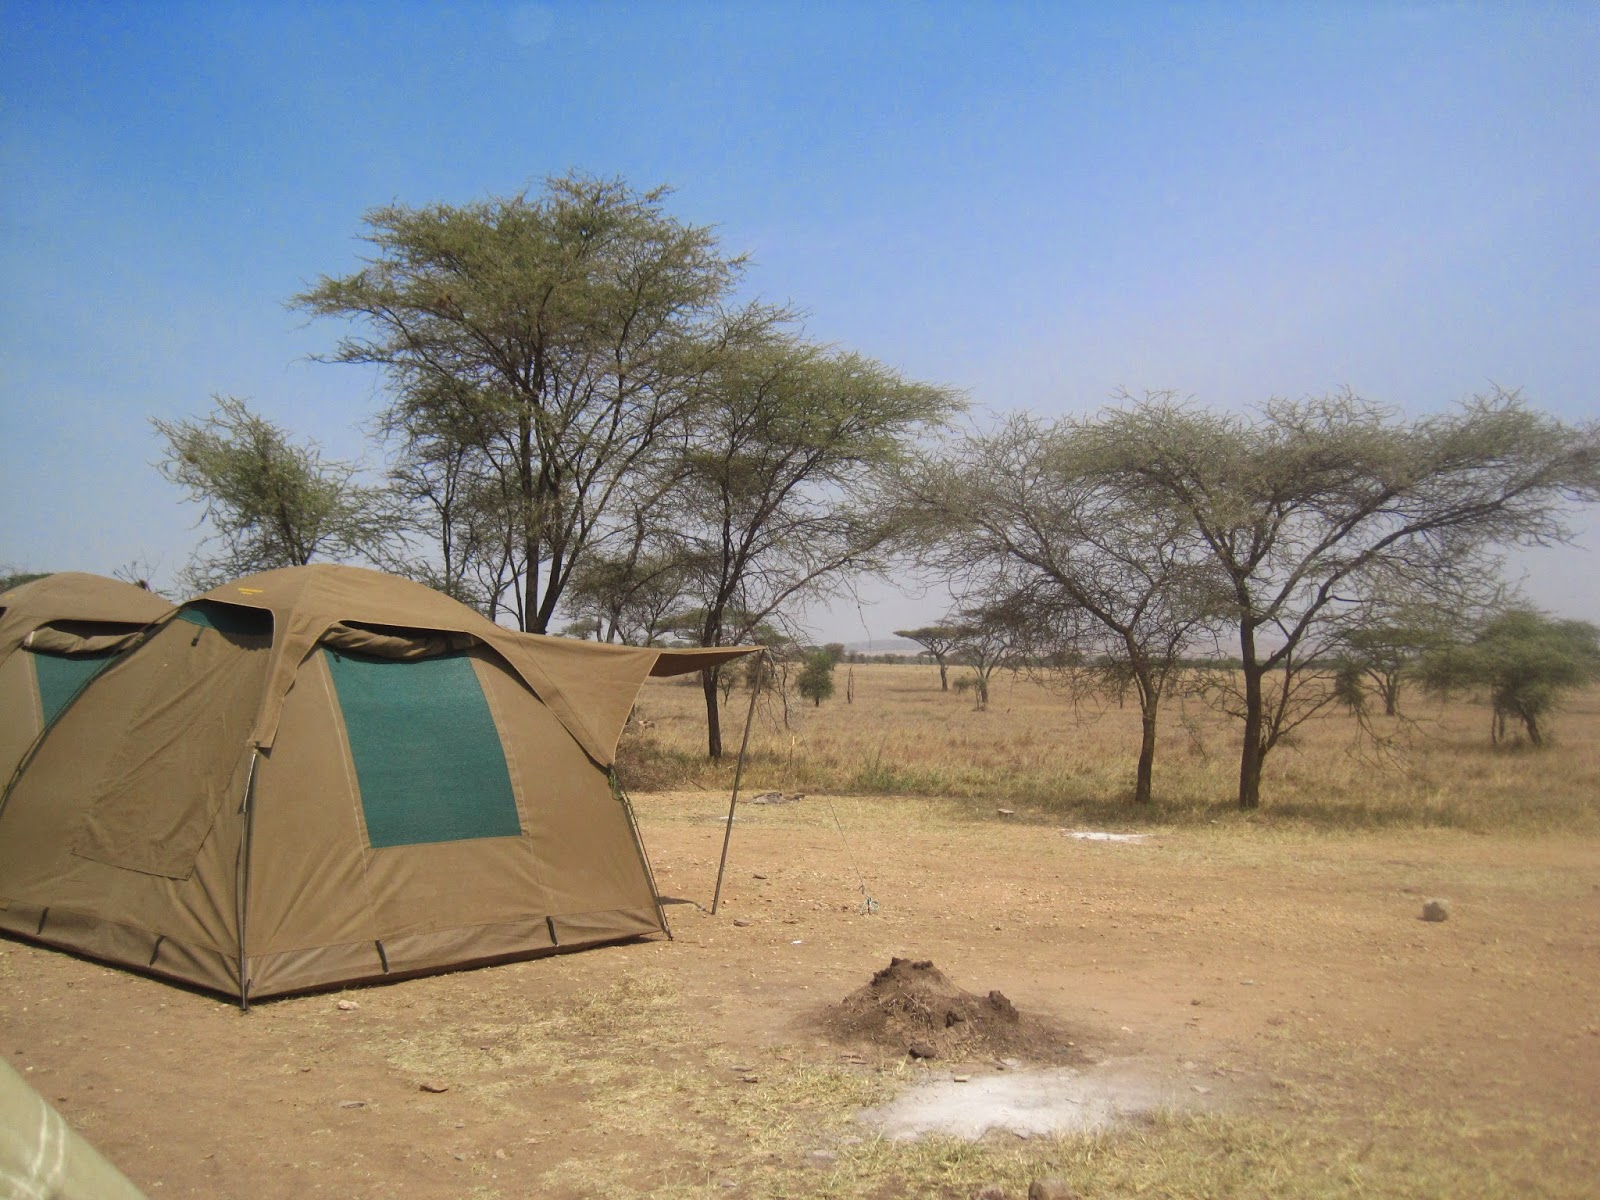 Safari-tents-ngorongoro-serengeti